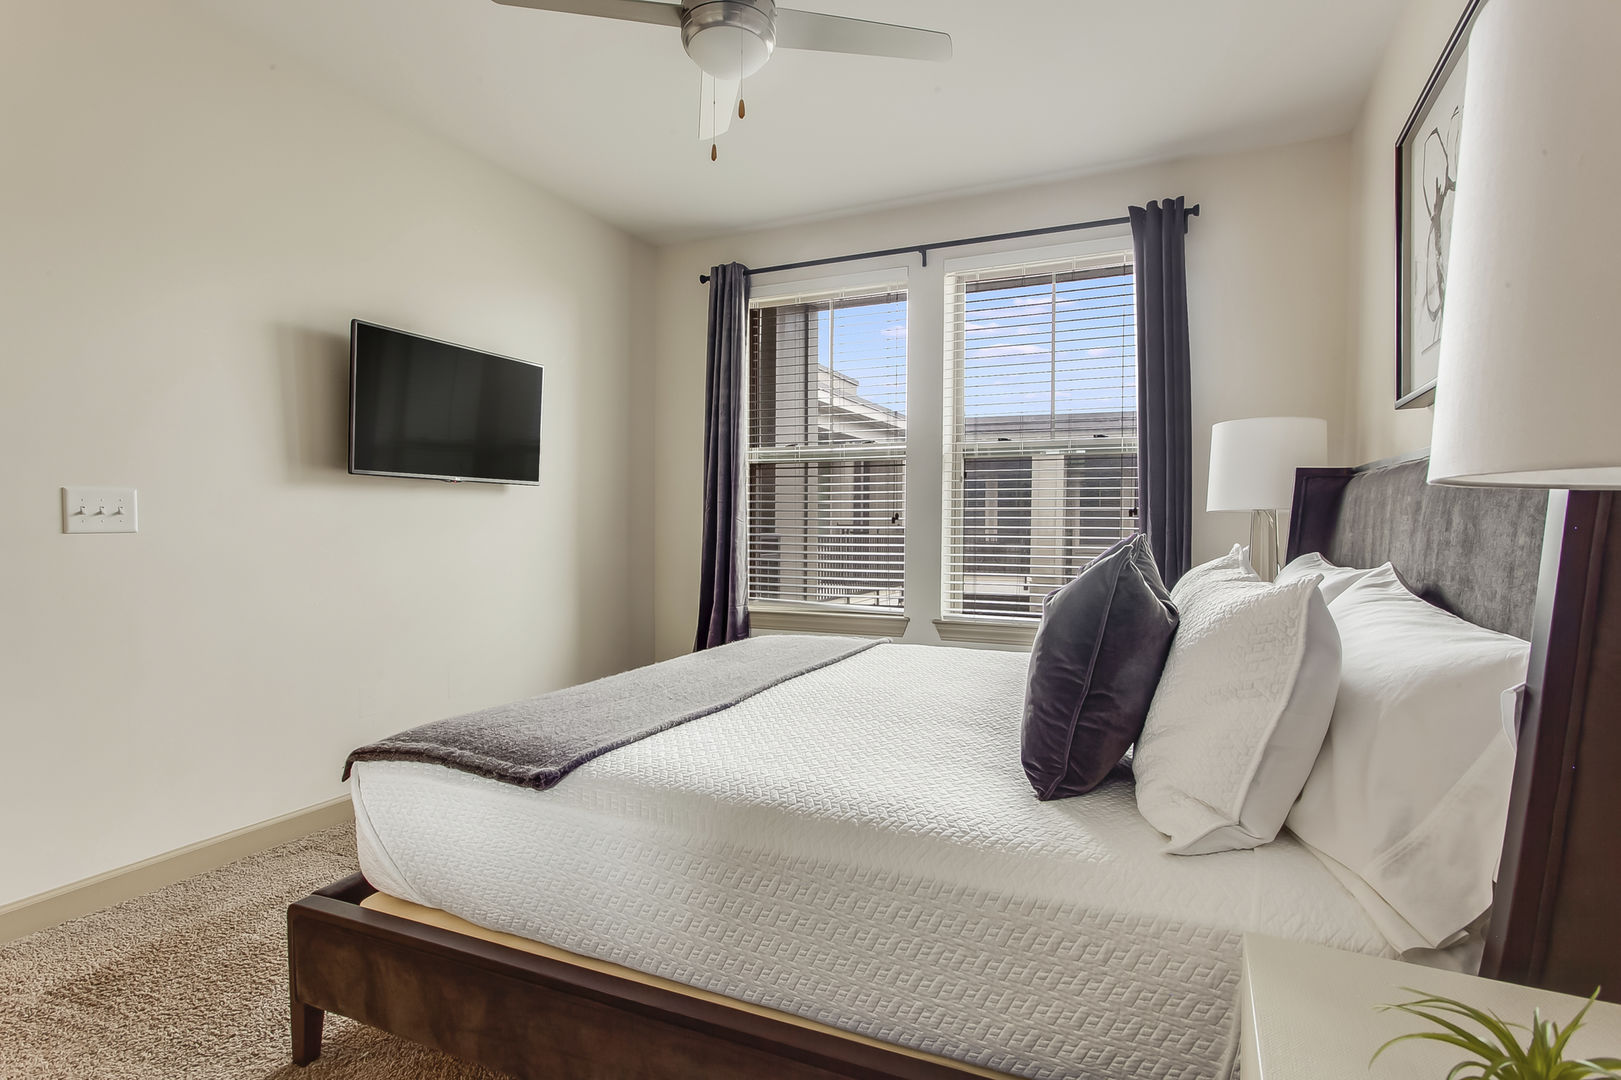 The bedroom at this Atlanta Rental Apartment has a wall mounted TV and a ceiling fan